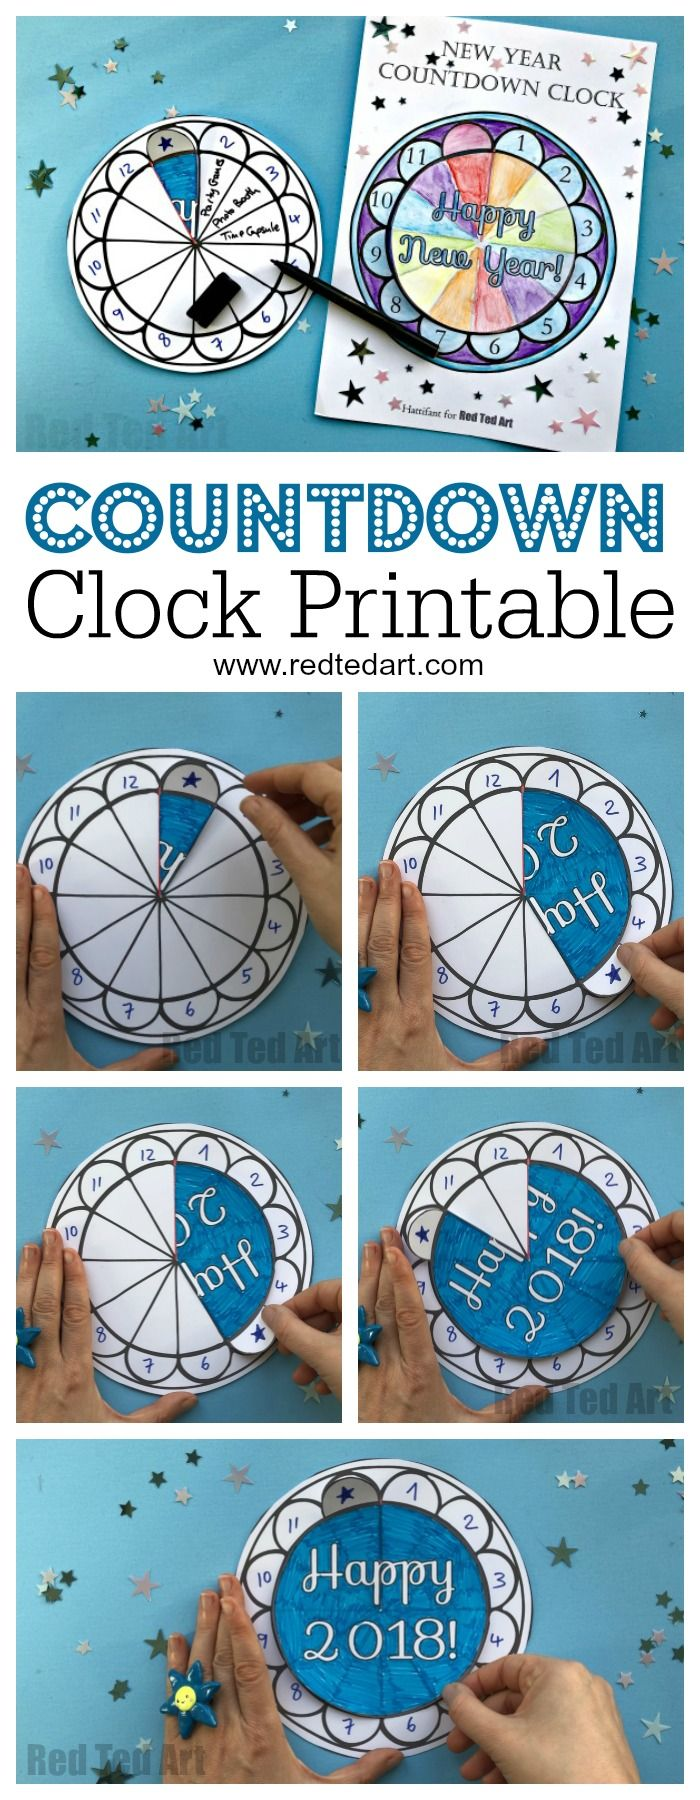 861 best Math images on Pinterest | Math activities, Education and ...